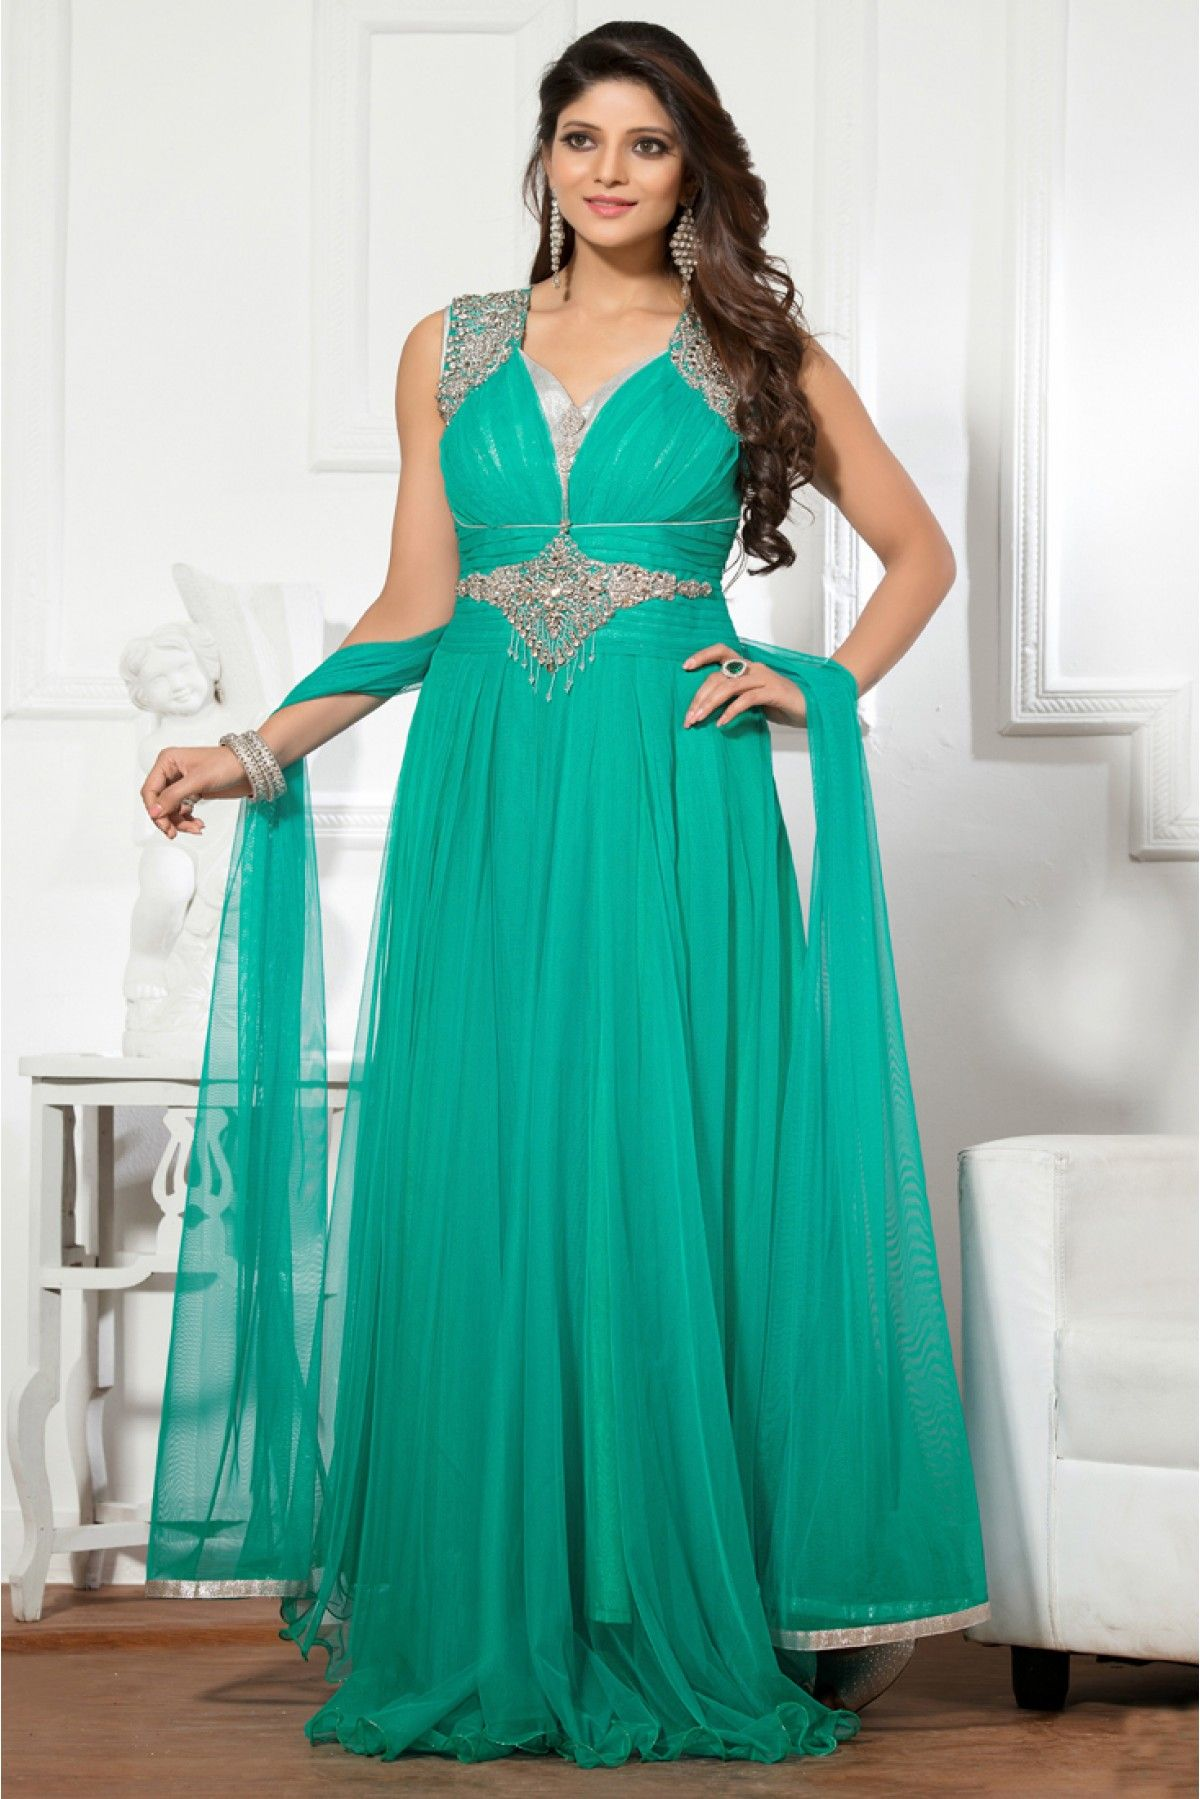 Net and Shimmer Semi Stitched Party Wear Gown In Sky Blue Colour ...